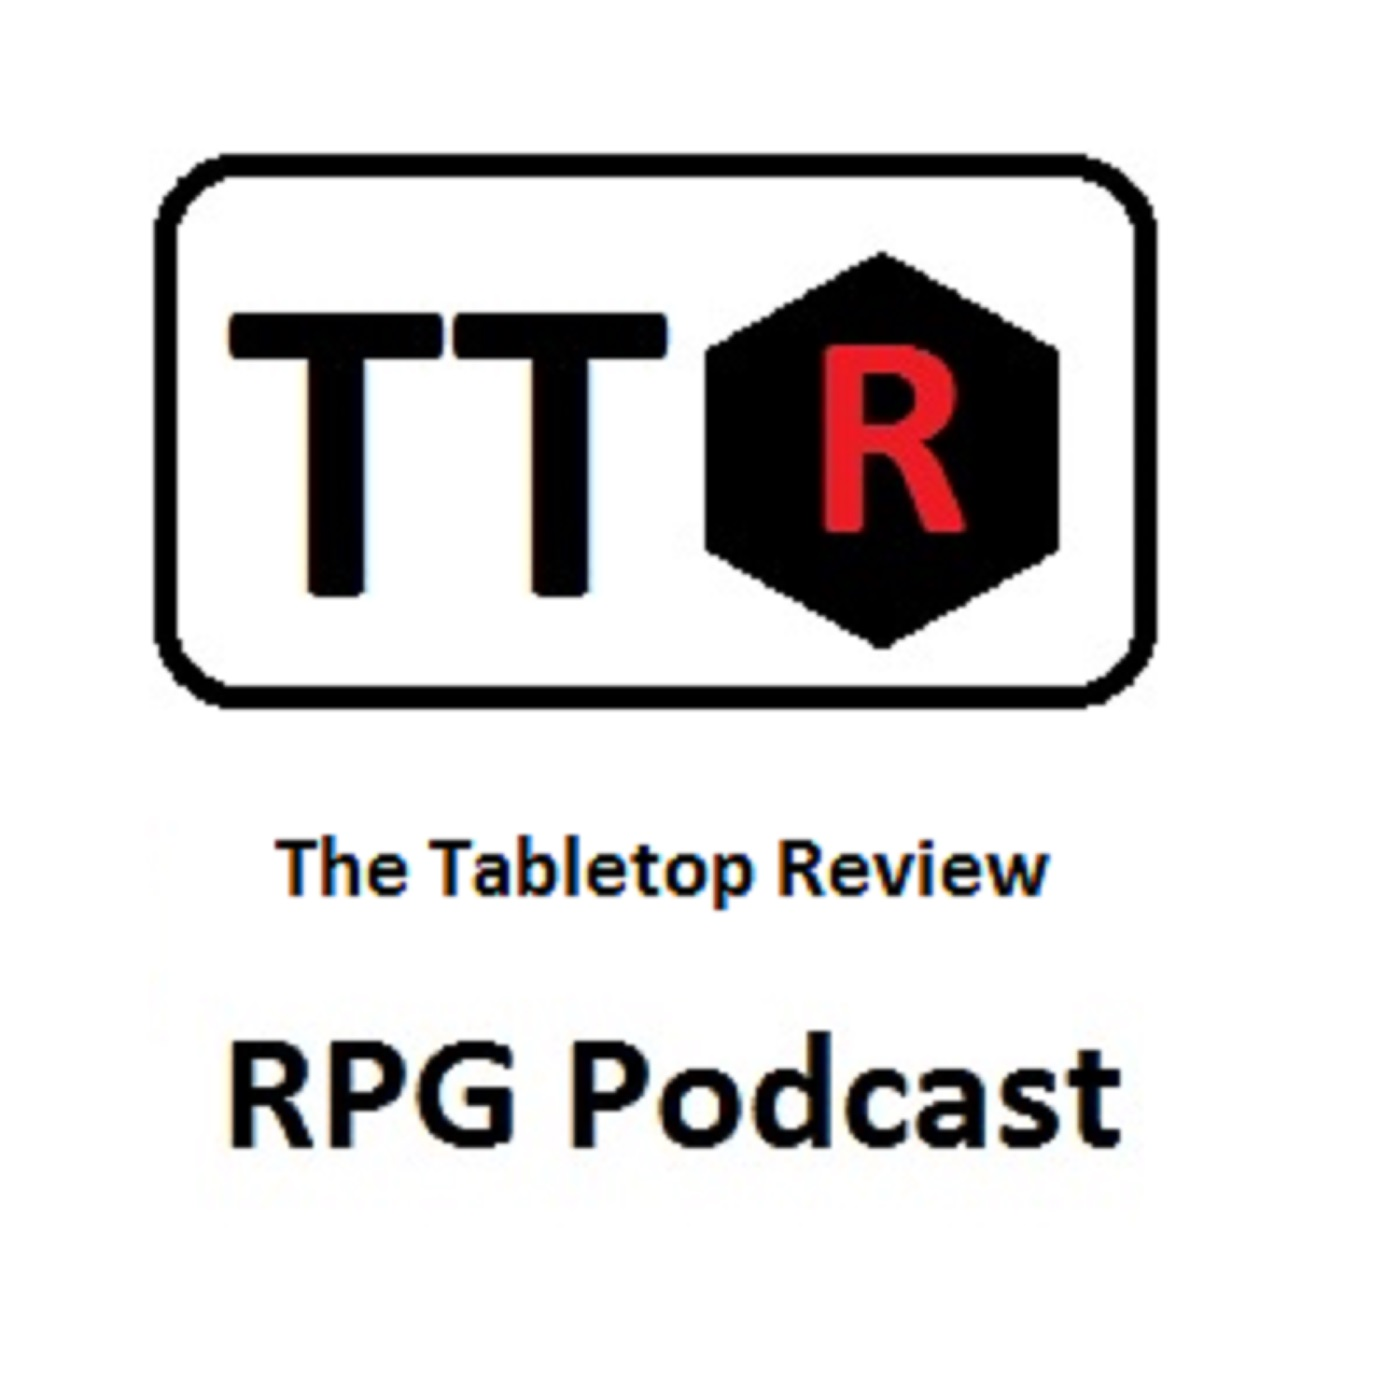 The Tabletop Review RPG Podcast